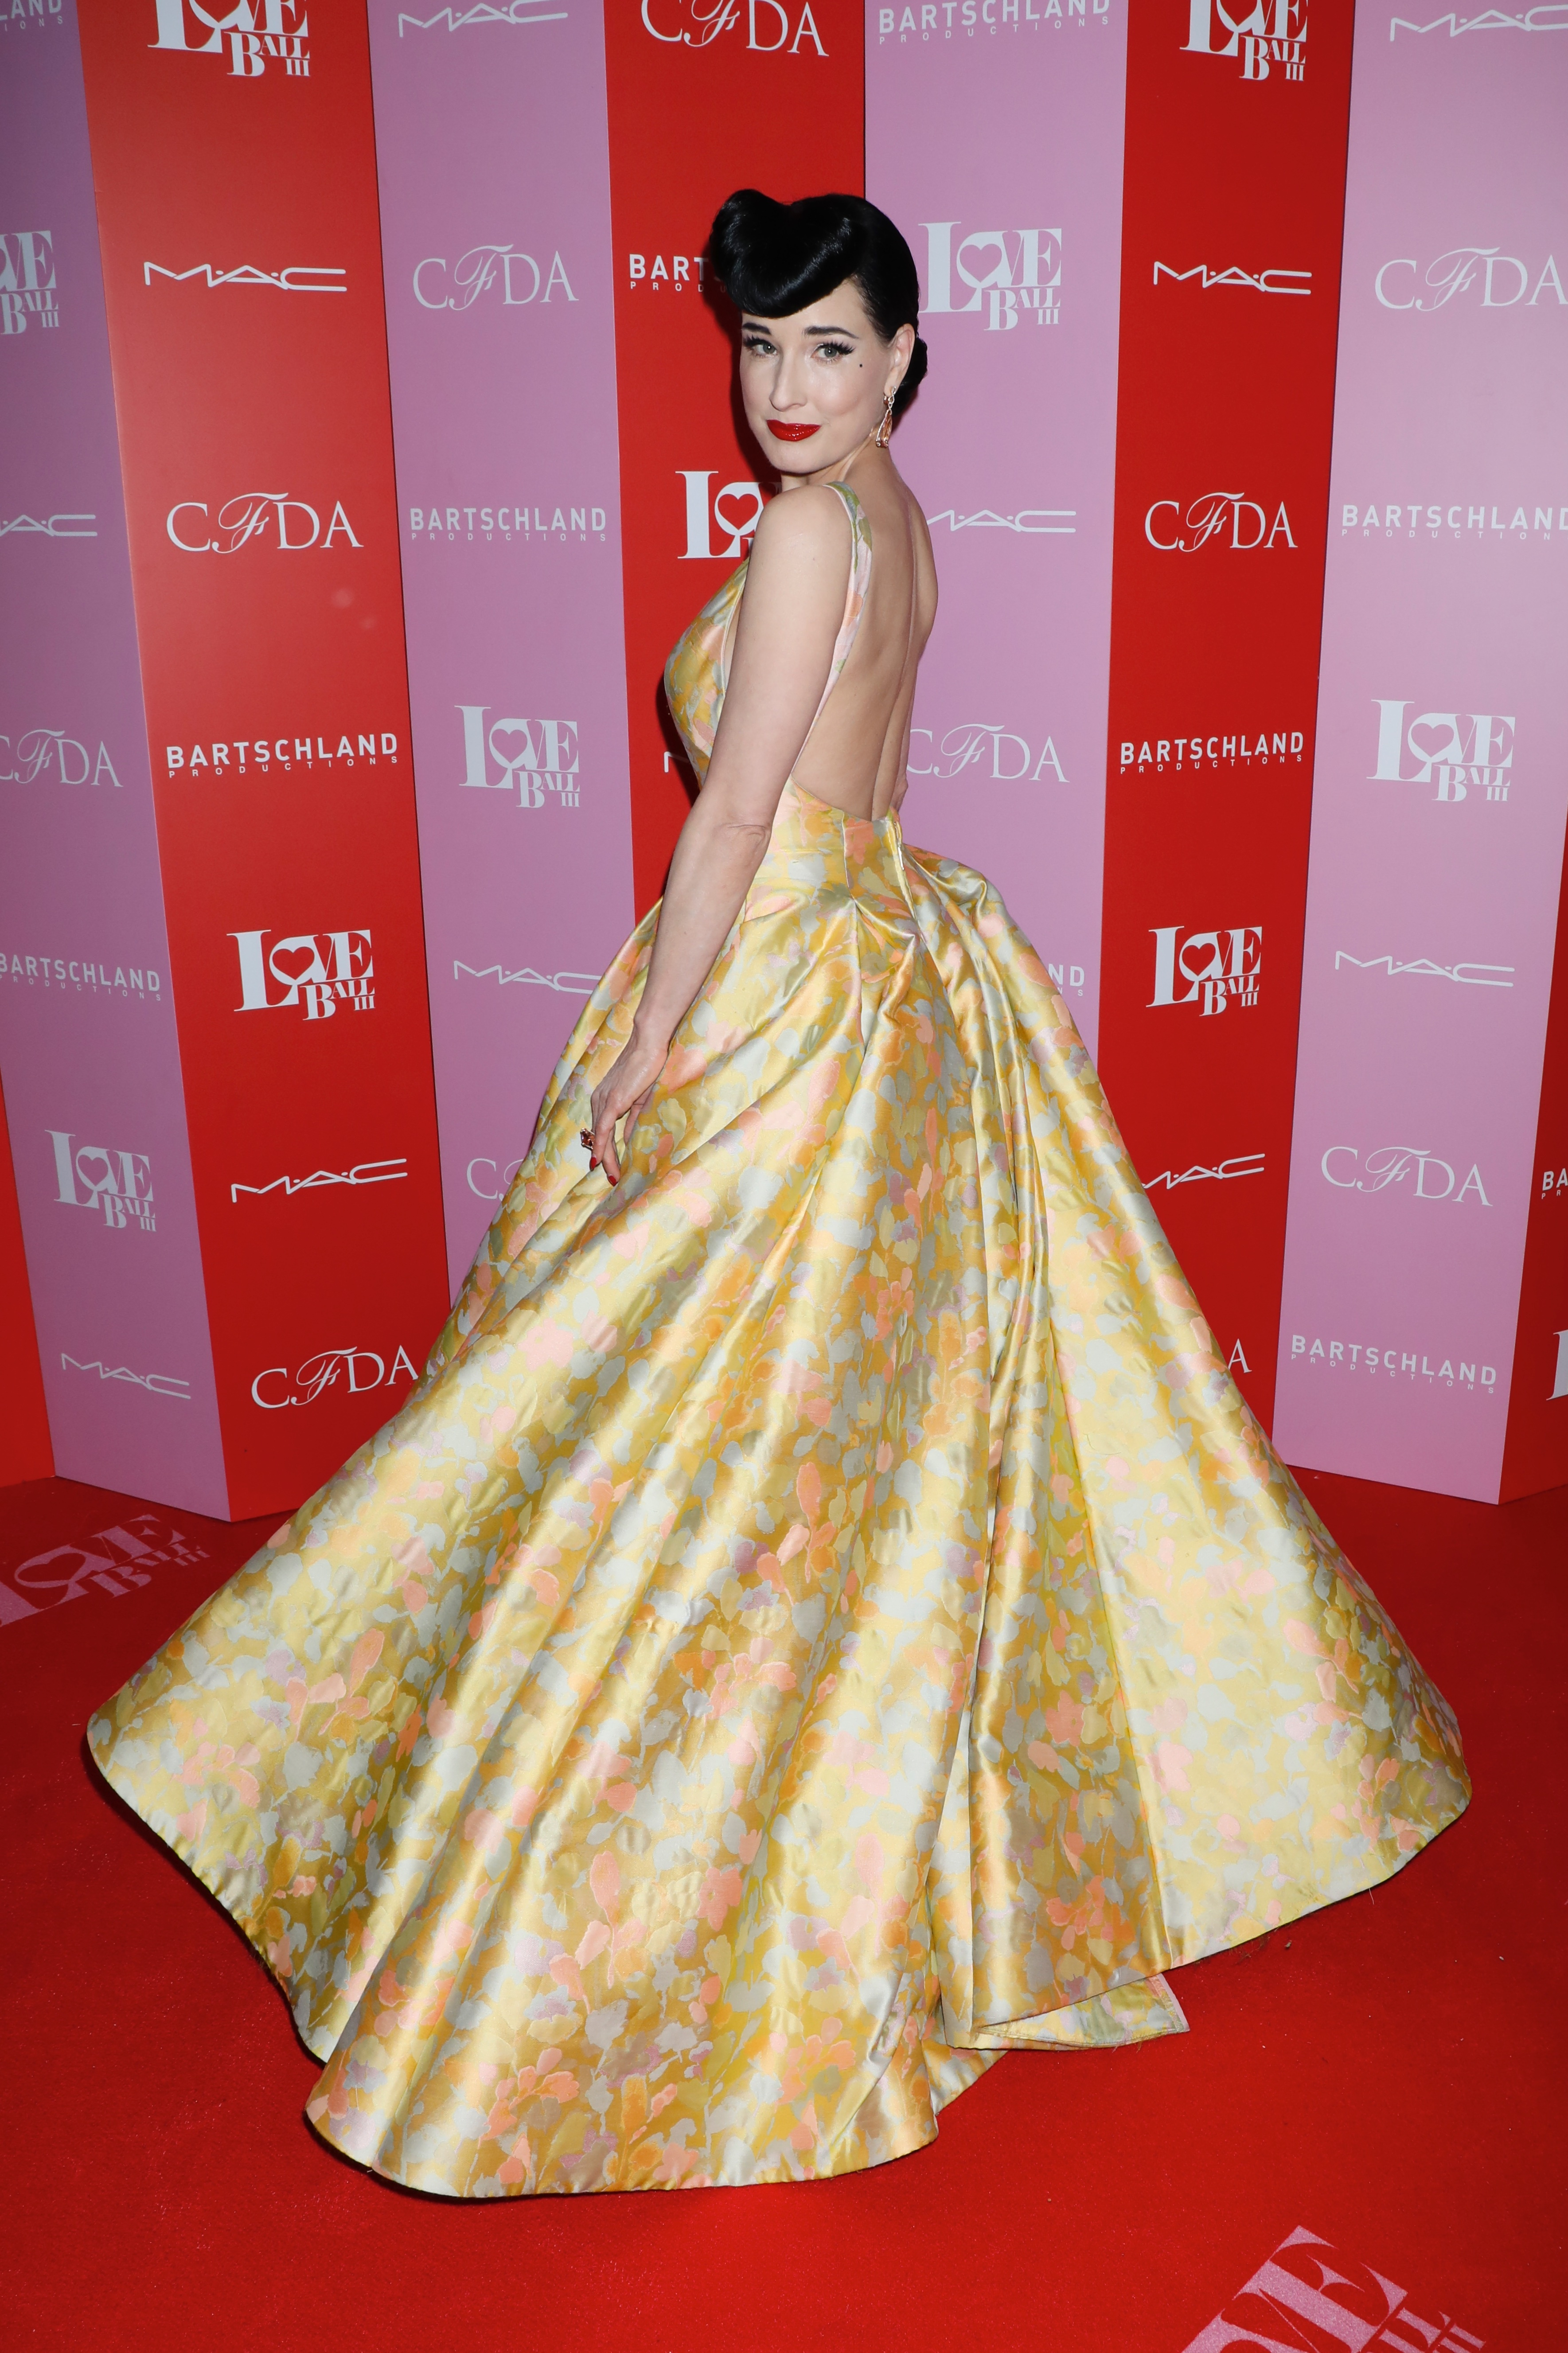 Dita Von Teese attends the Love Ball III HIV/AIDS benefit, hosted by The Council of Fashion Designers of America (CFDA) and Susanne Bartsch, in New York City on June 25, 2019.